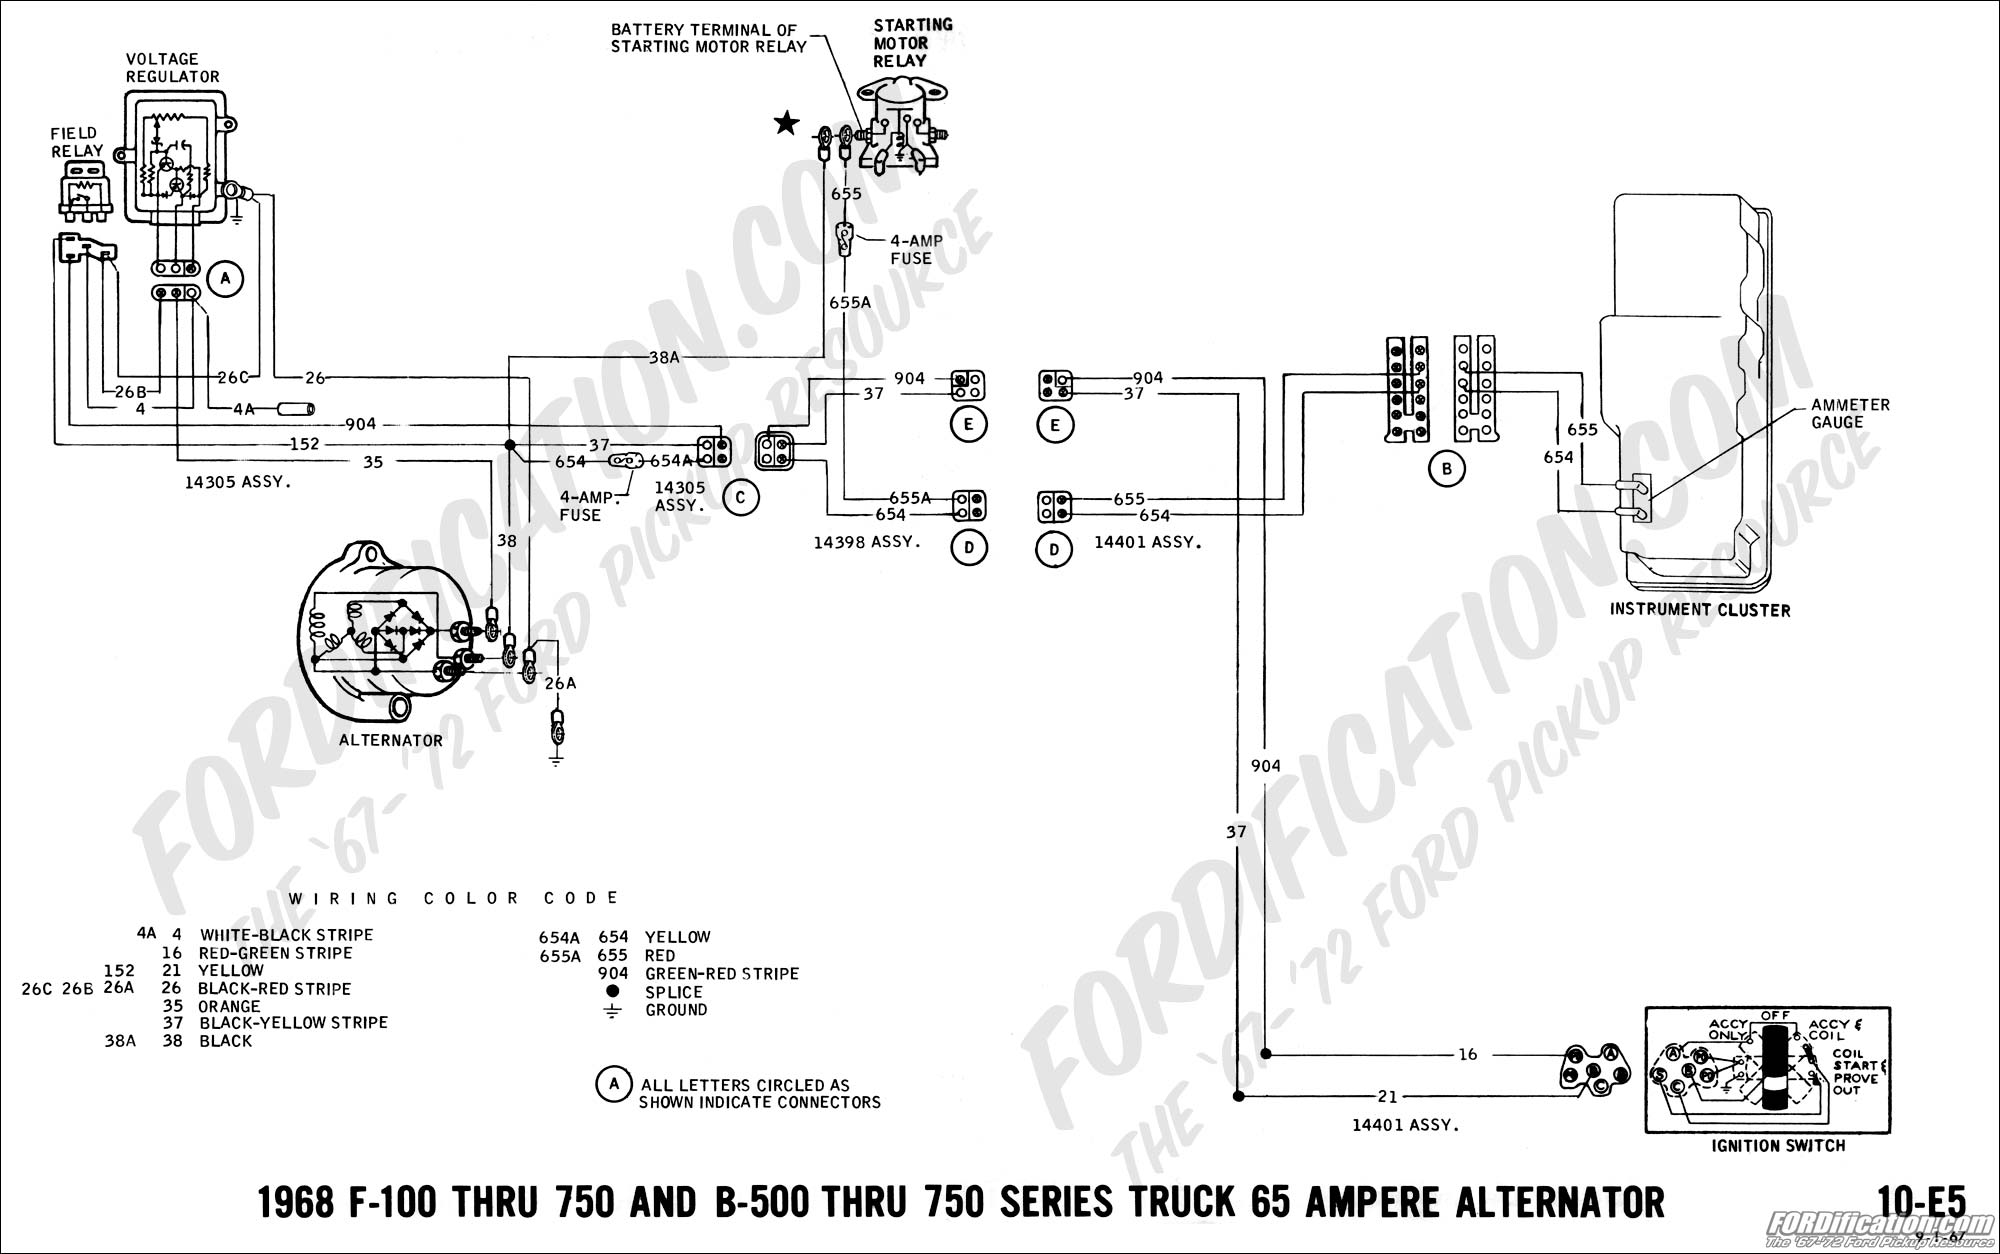 68 07 ford truck technical drawings and schematics section h wiring 1971 ford f250 wiring diagram at edmiracle.co